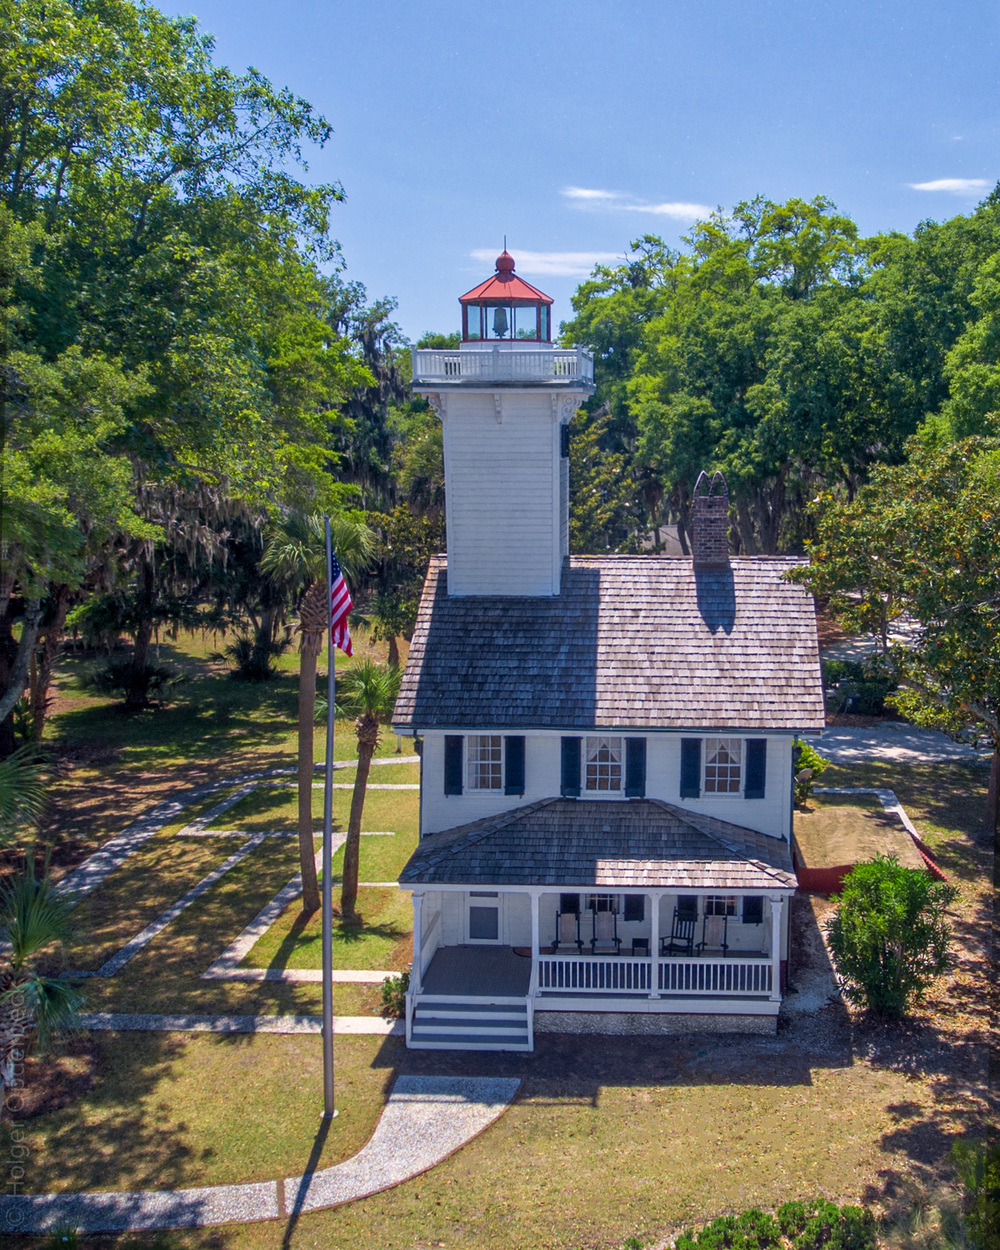 lighthouse-drone-front.jpg